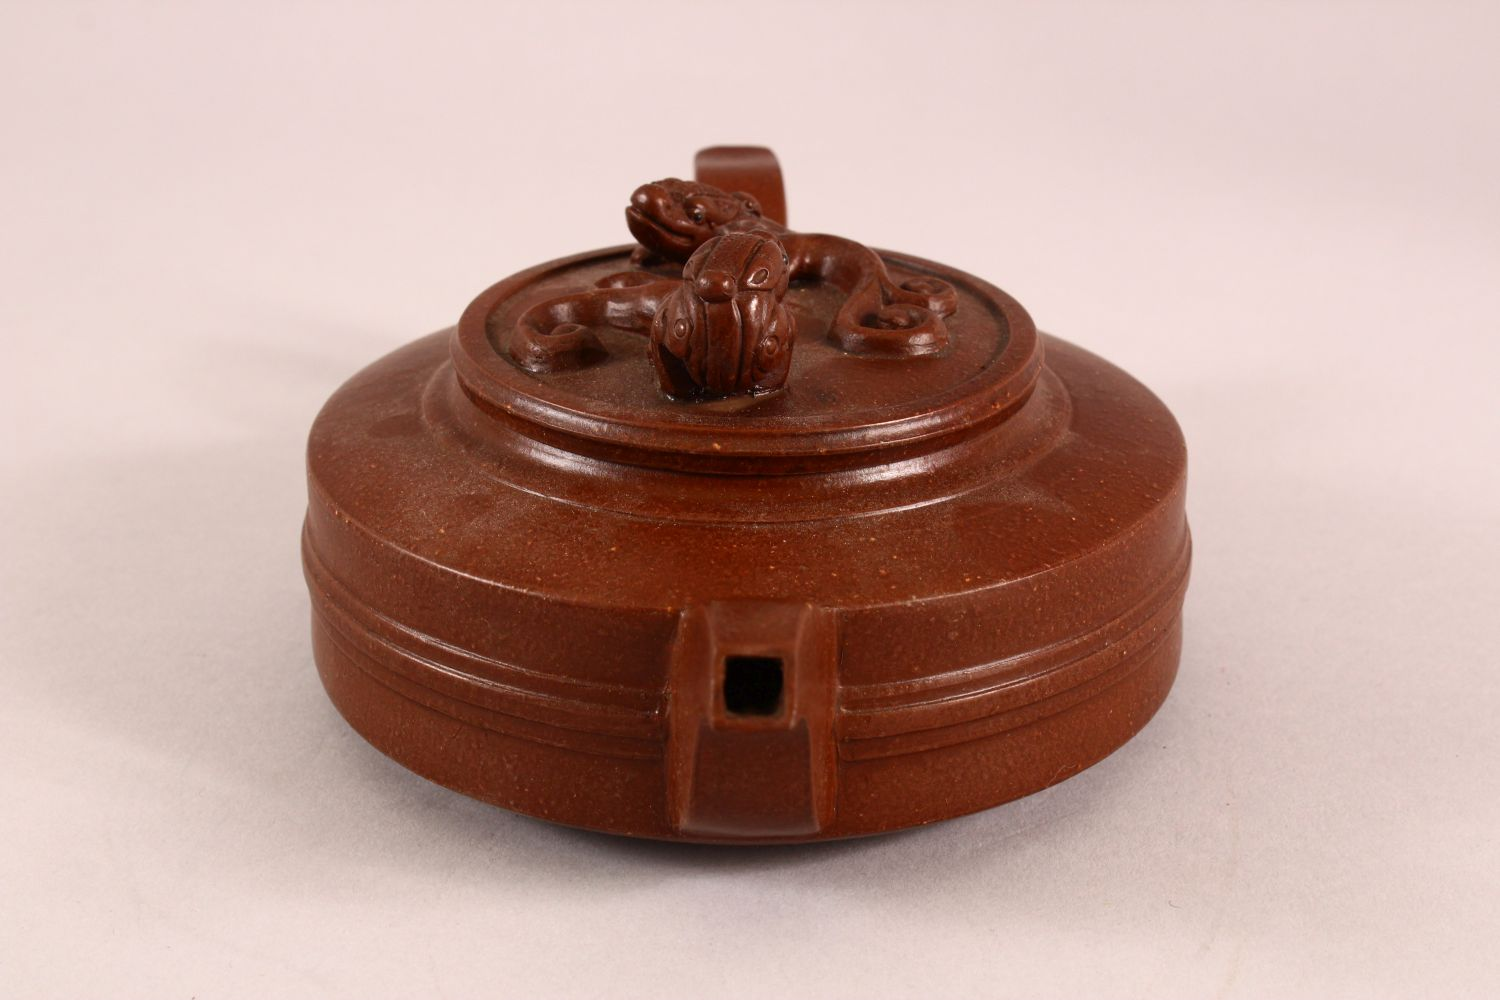 A CHINESE YIXING CLAY TEAPOT, with moulded beast like figures, the underside of the pot and lid with - Image 2 of 8